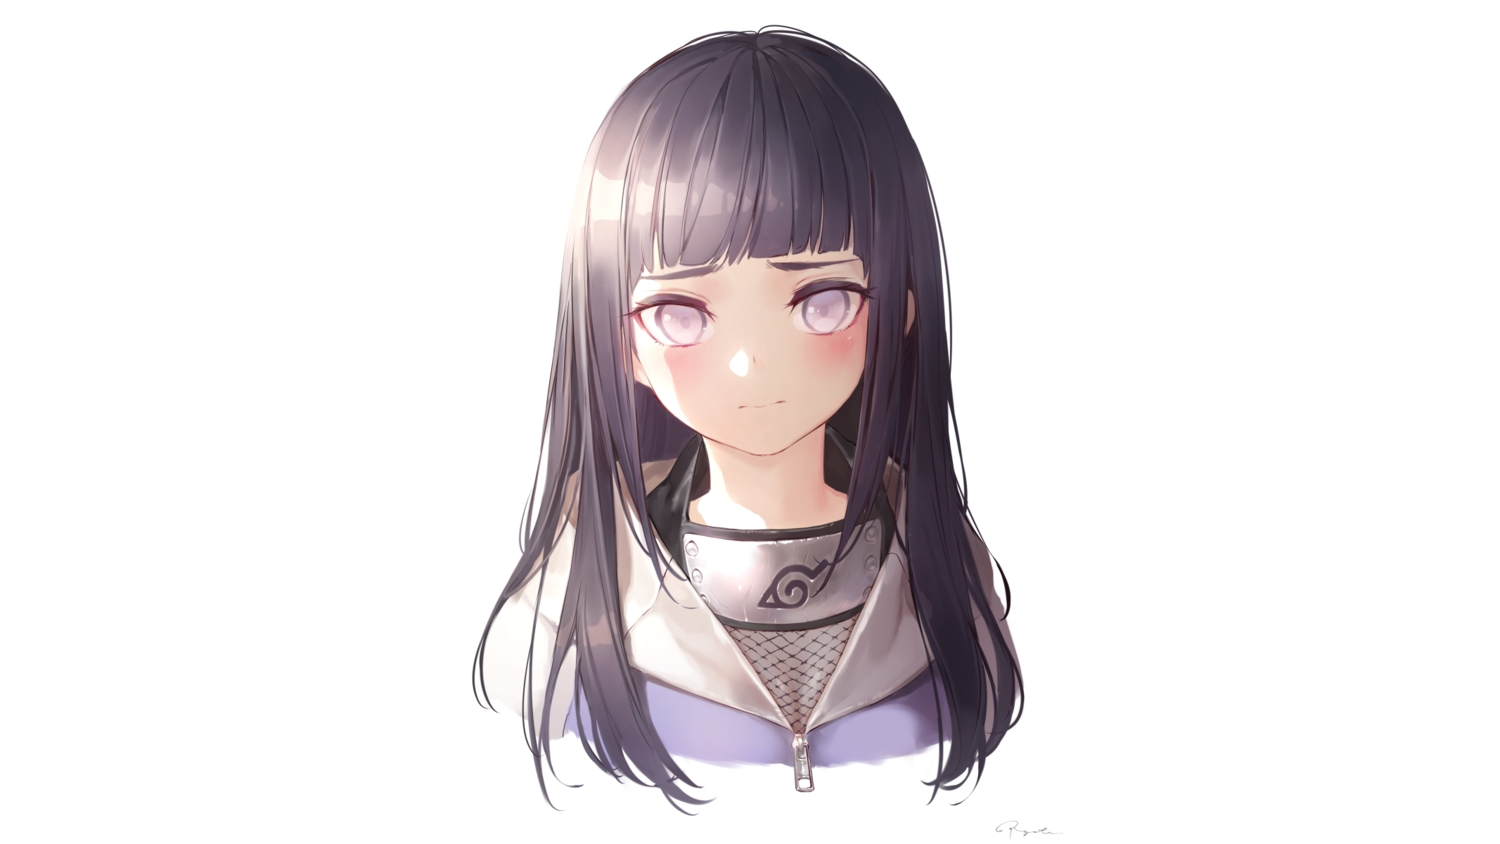 black_hair headband hyuuga_hinata long_hair naruto naruto_shippuden ninja purple_eyes ryota_(ry_o_ta) signed white